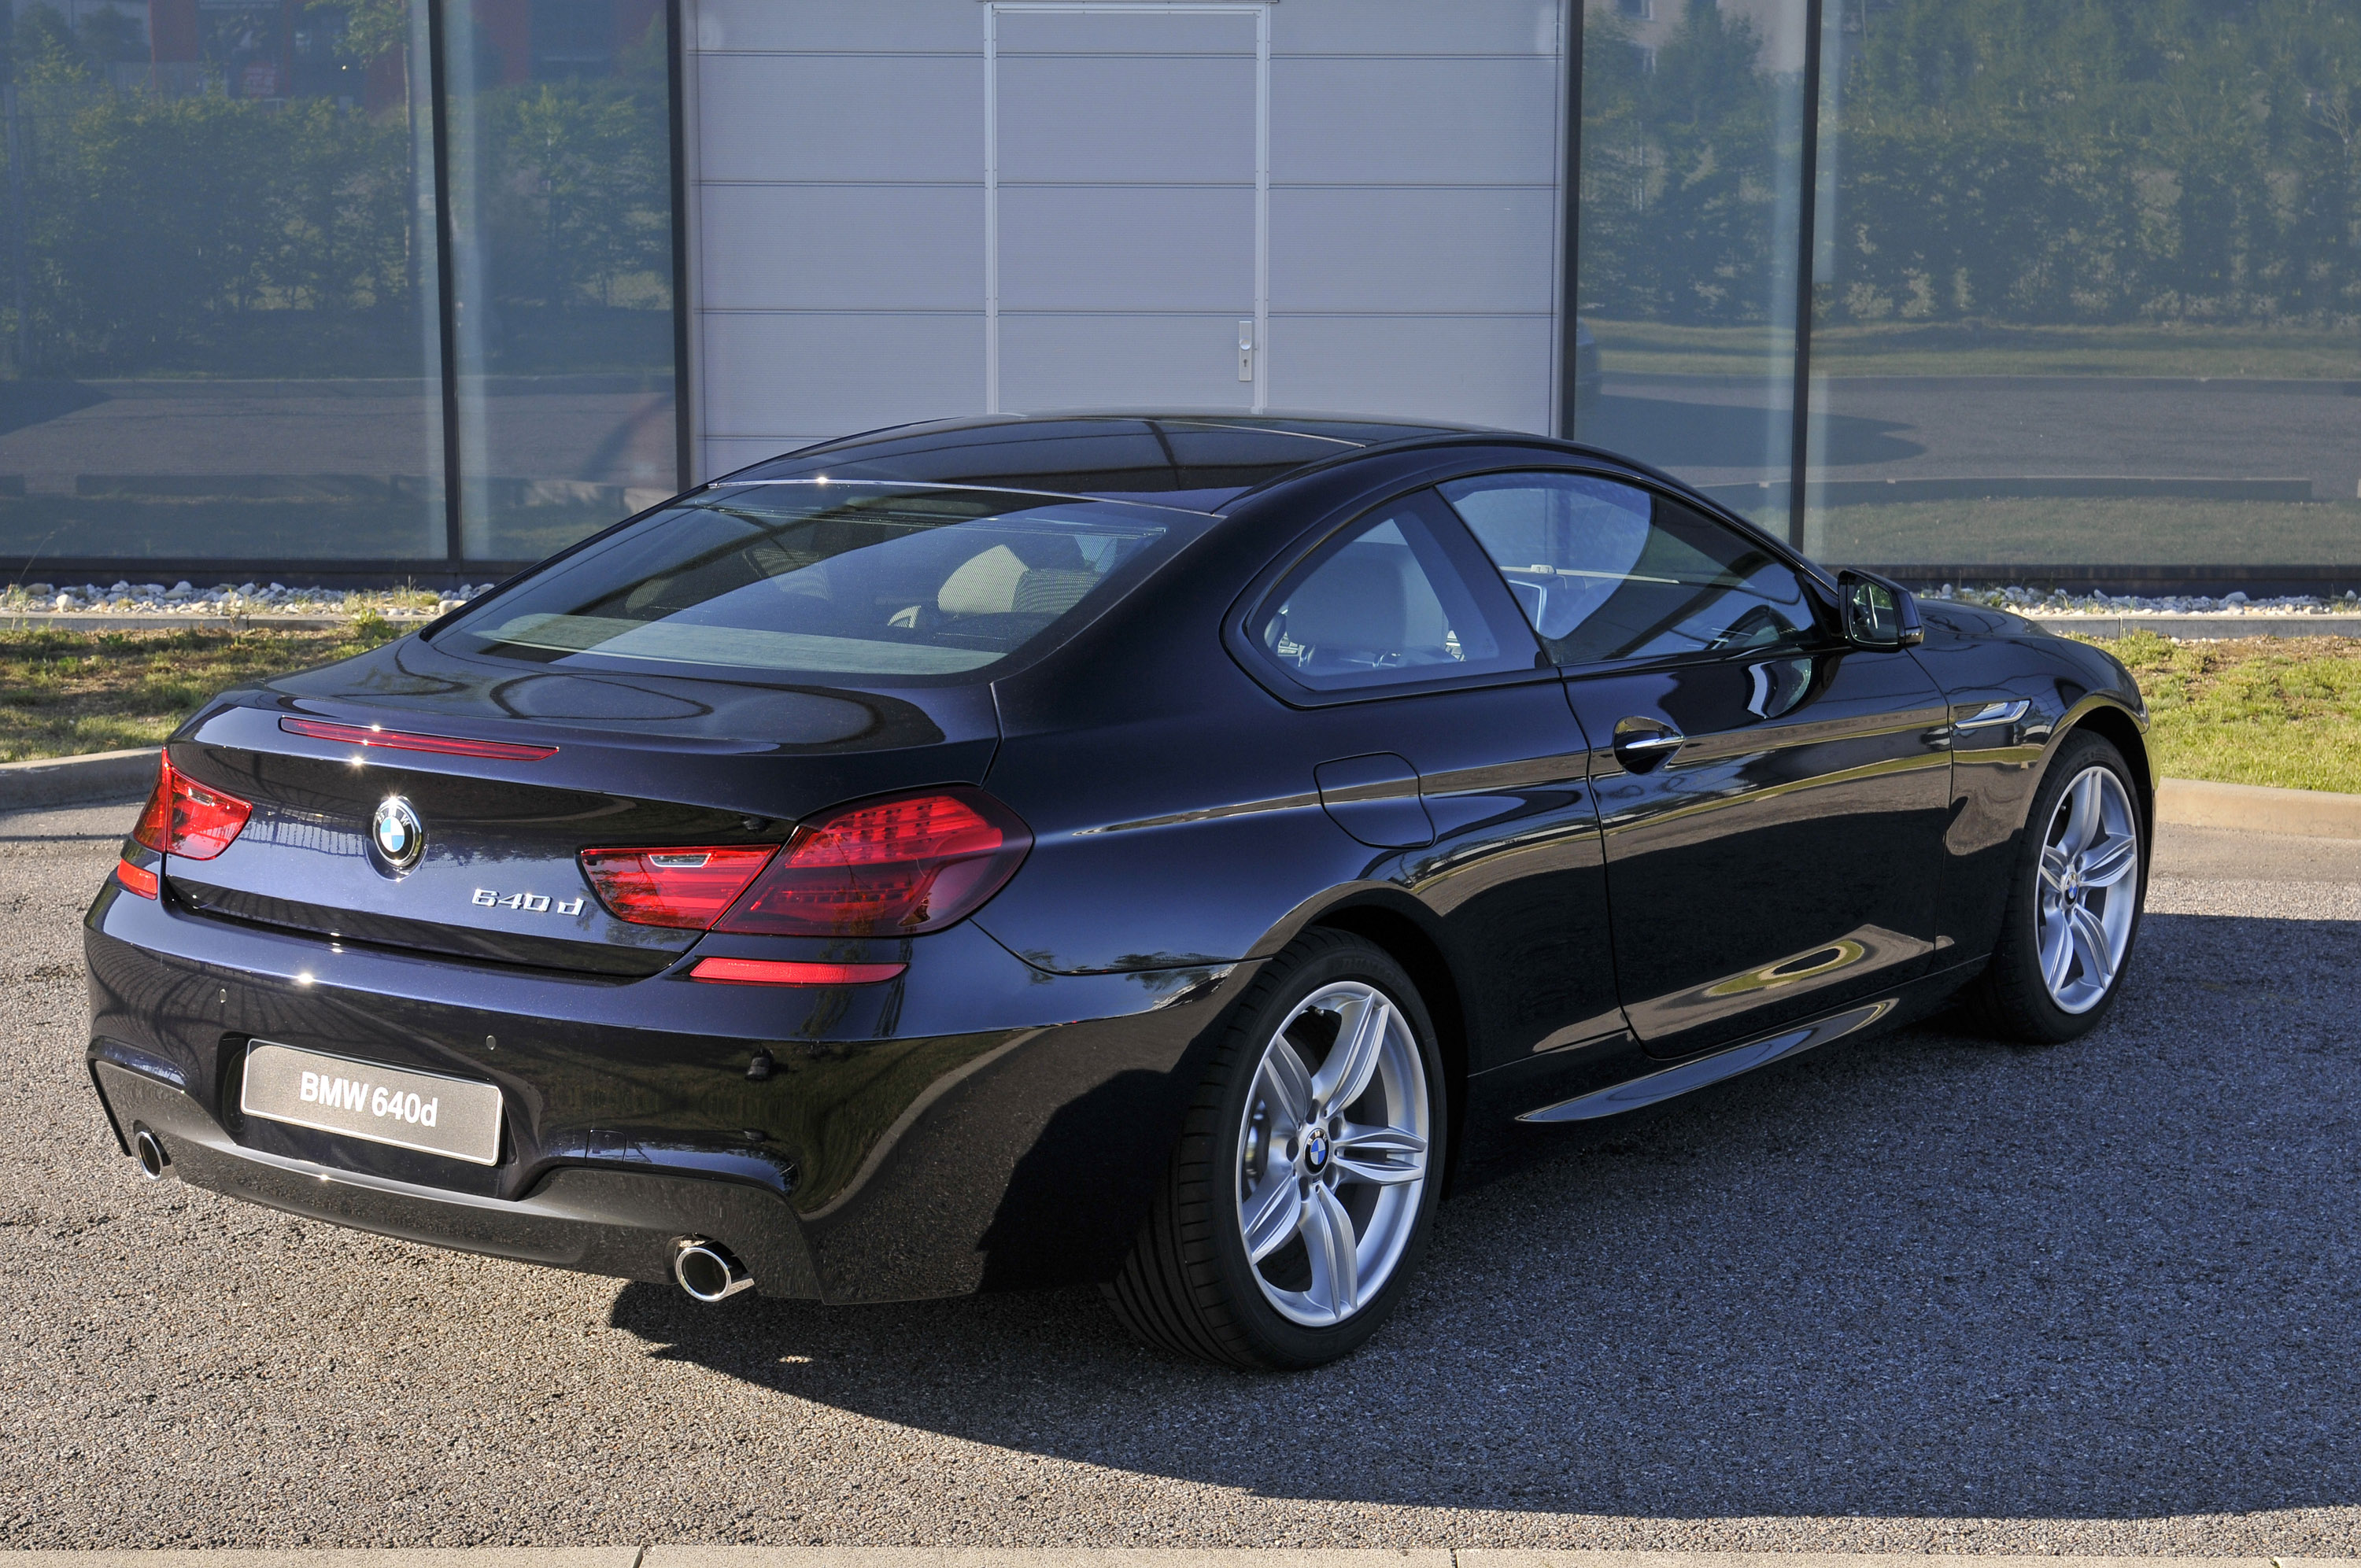 fifth gear 2012 bmw 640d coupe m sport video. Black Bedroom Furniture Sets. Home Design Ideas